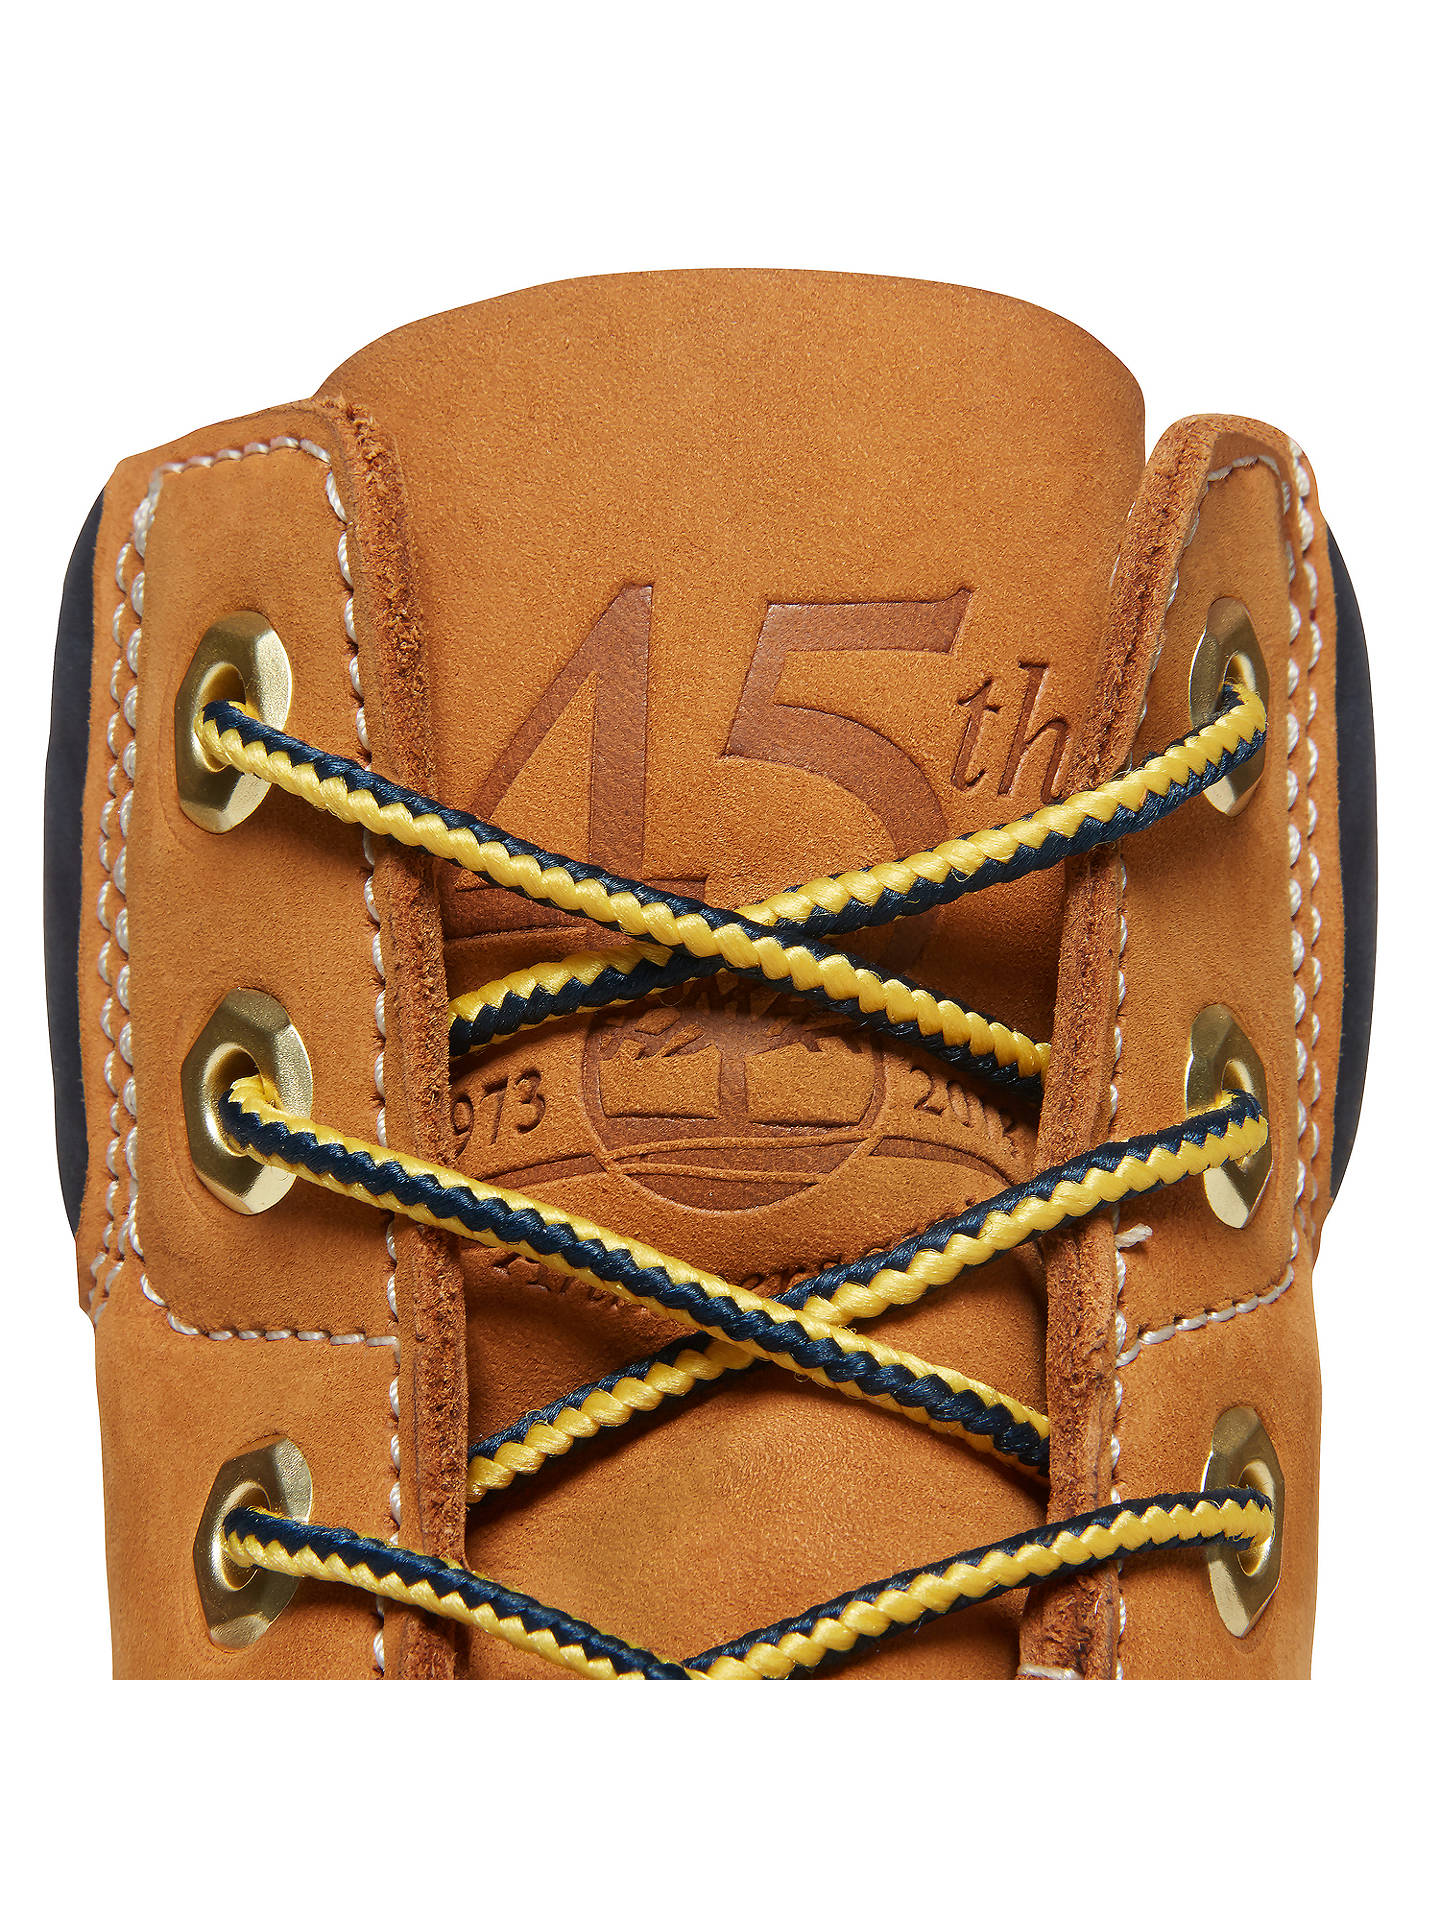 BuyTimberland Women's Classic 6-Inch Premium Waterproof 45 Year Anniversary Boots, Yellow, 4 Online at johnlewis.com